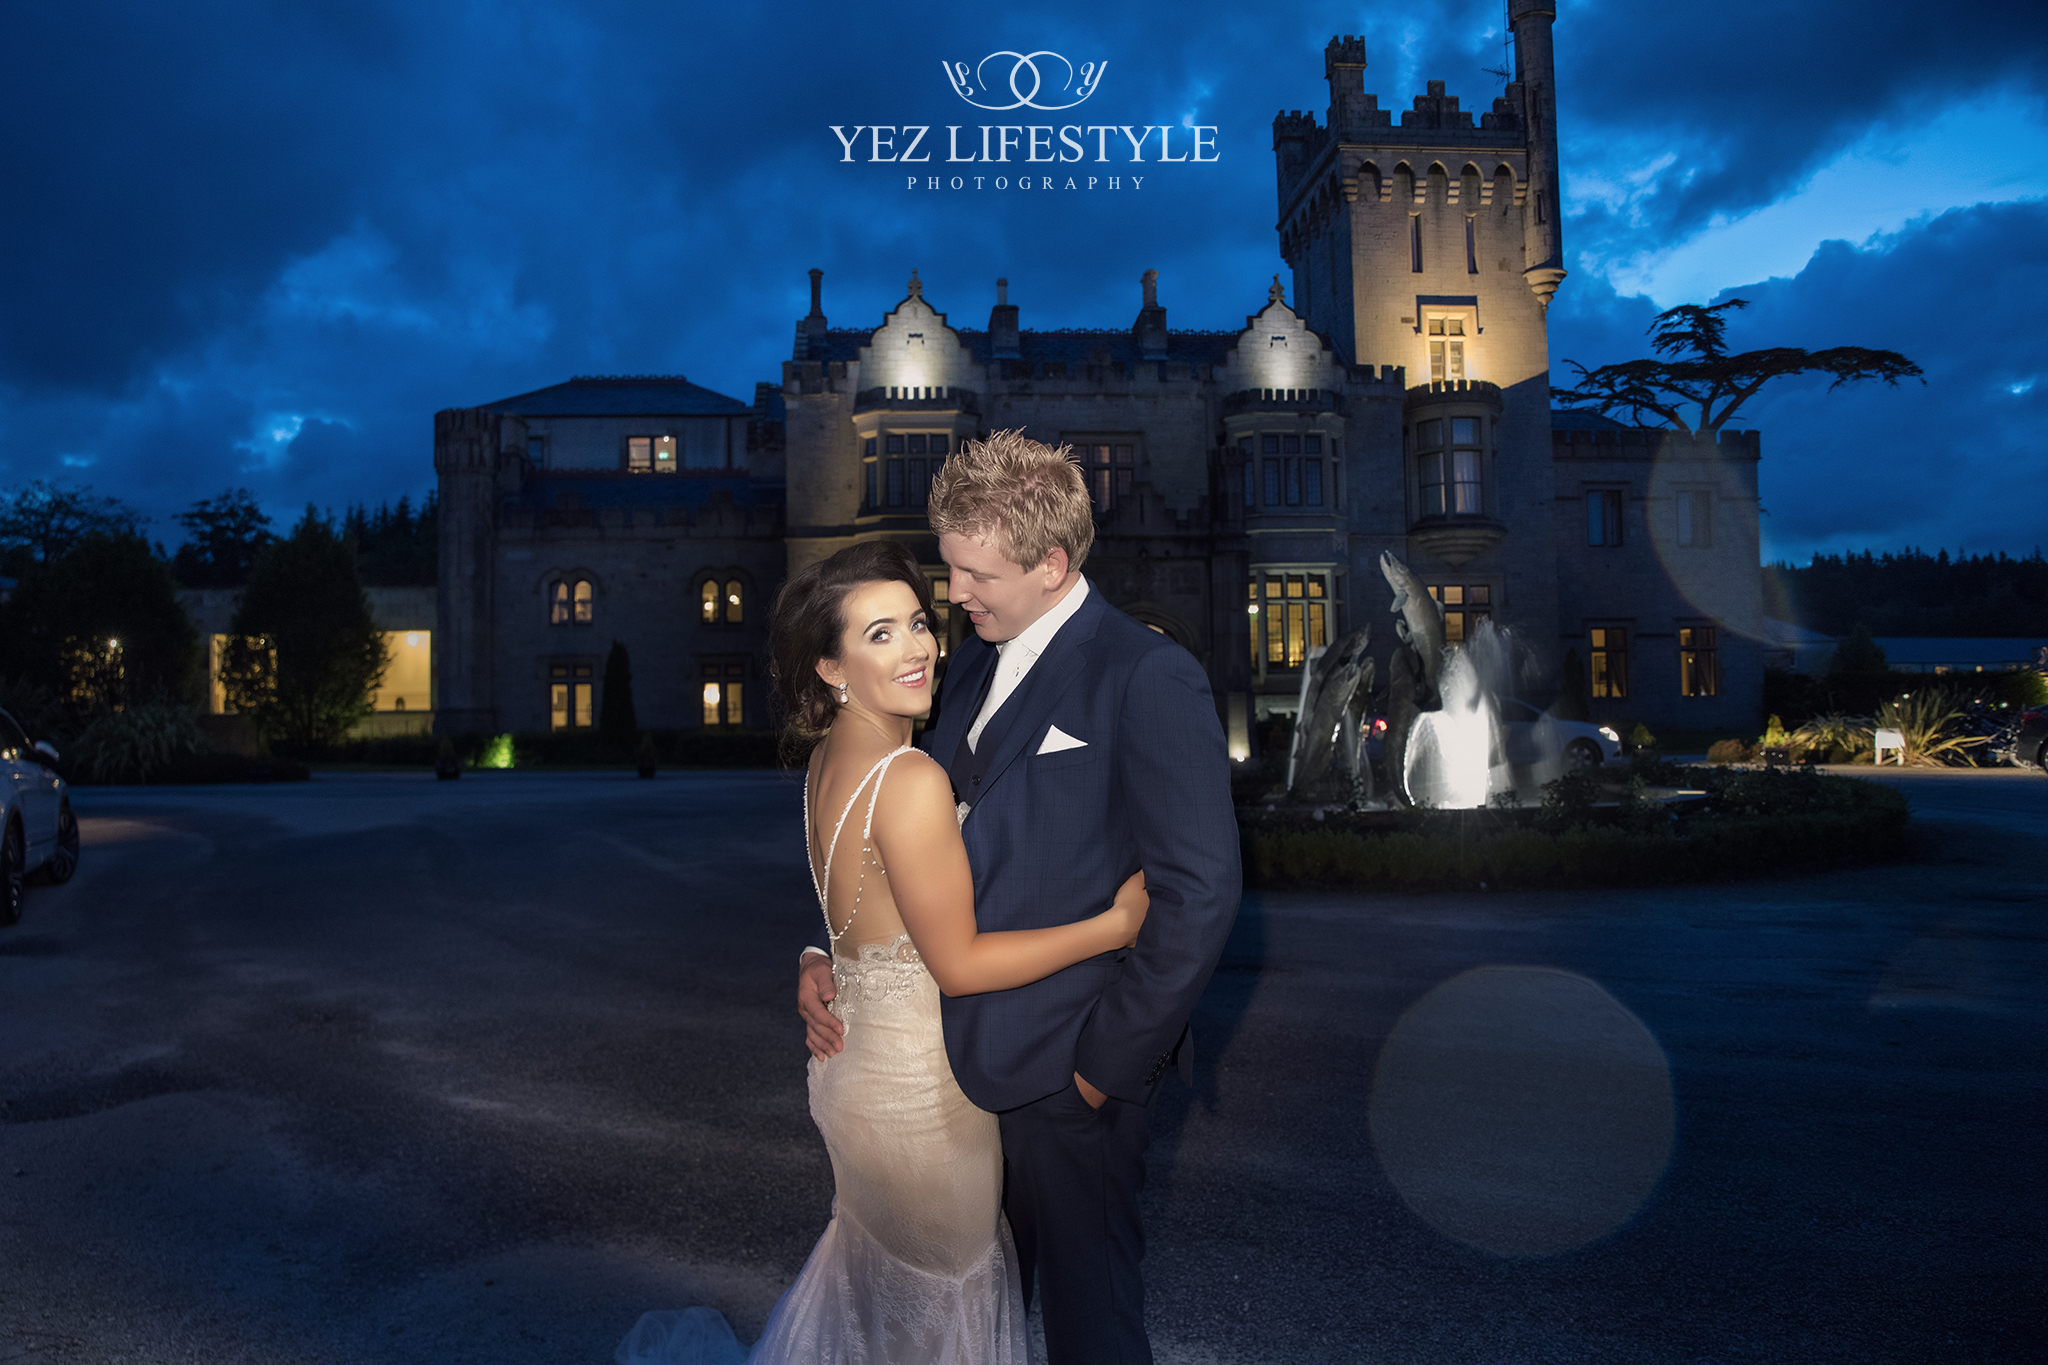 The stunning Wedding of Leona Gallen and Paschal Carville took place on June 3rd 2017 in Donegal ..........................  click for more